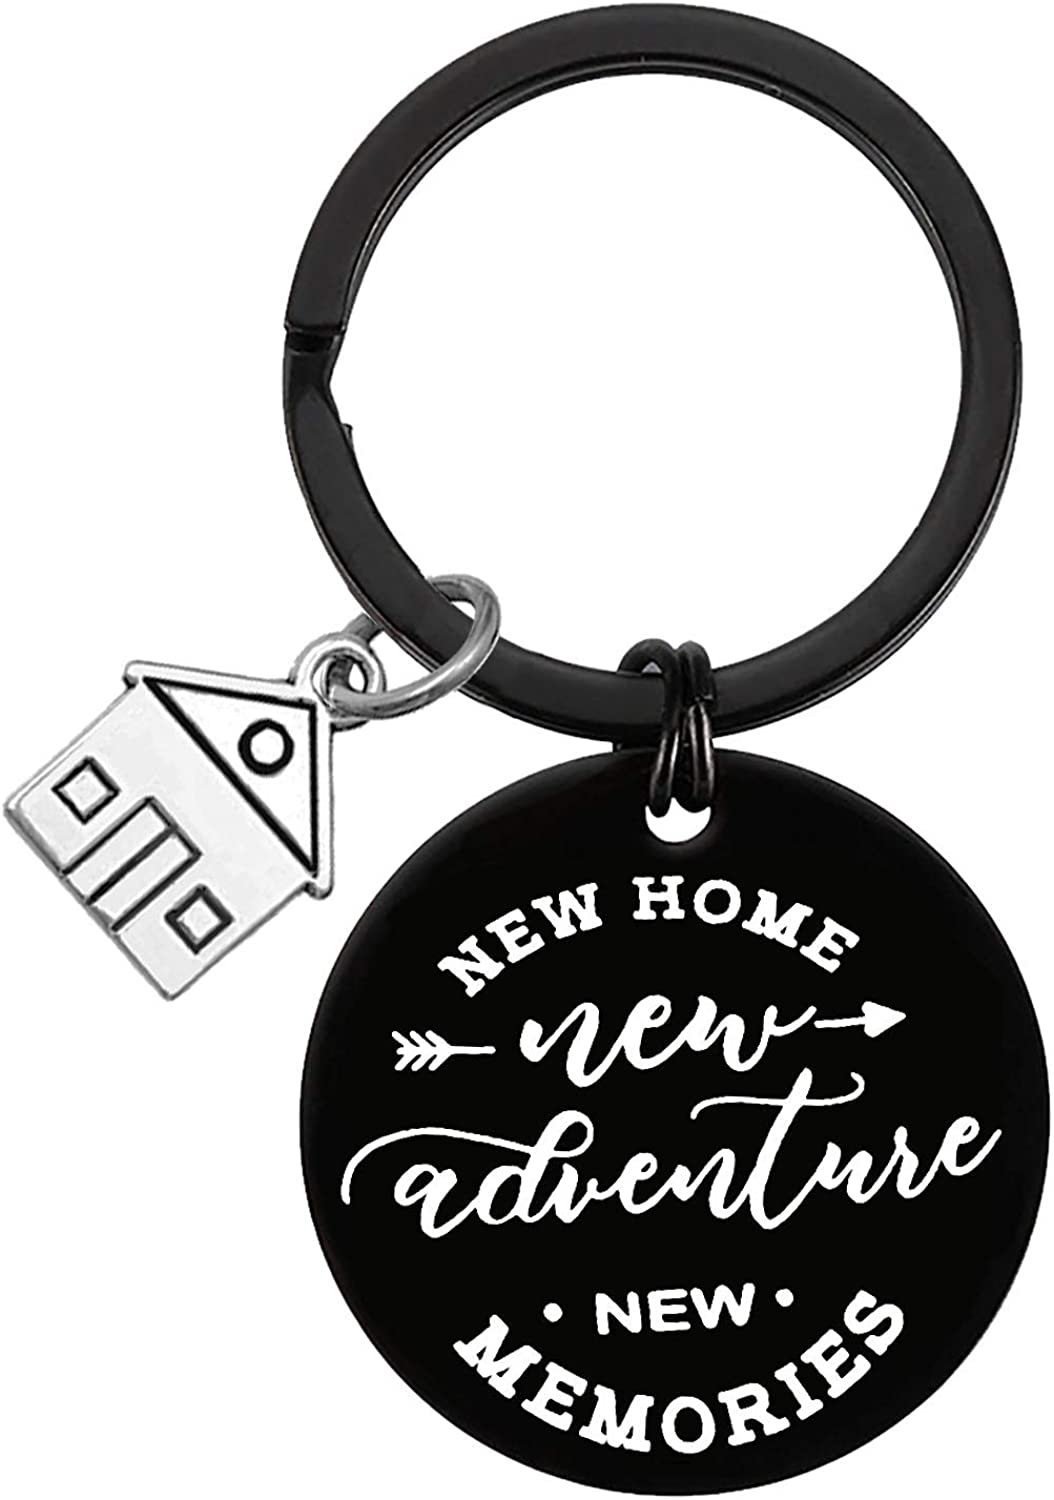 for New Home Keychain Keyring Jewelry 2020 Housewarming Gift First Home Gift Keychain New Memories Key Chain Realtor Closing Gifts New House Keyring Moving in Key Chain for New Home Owners Jewelry